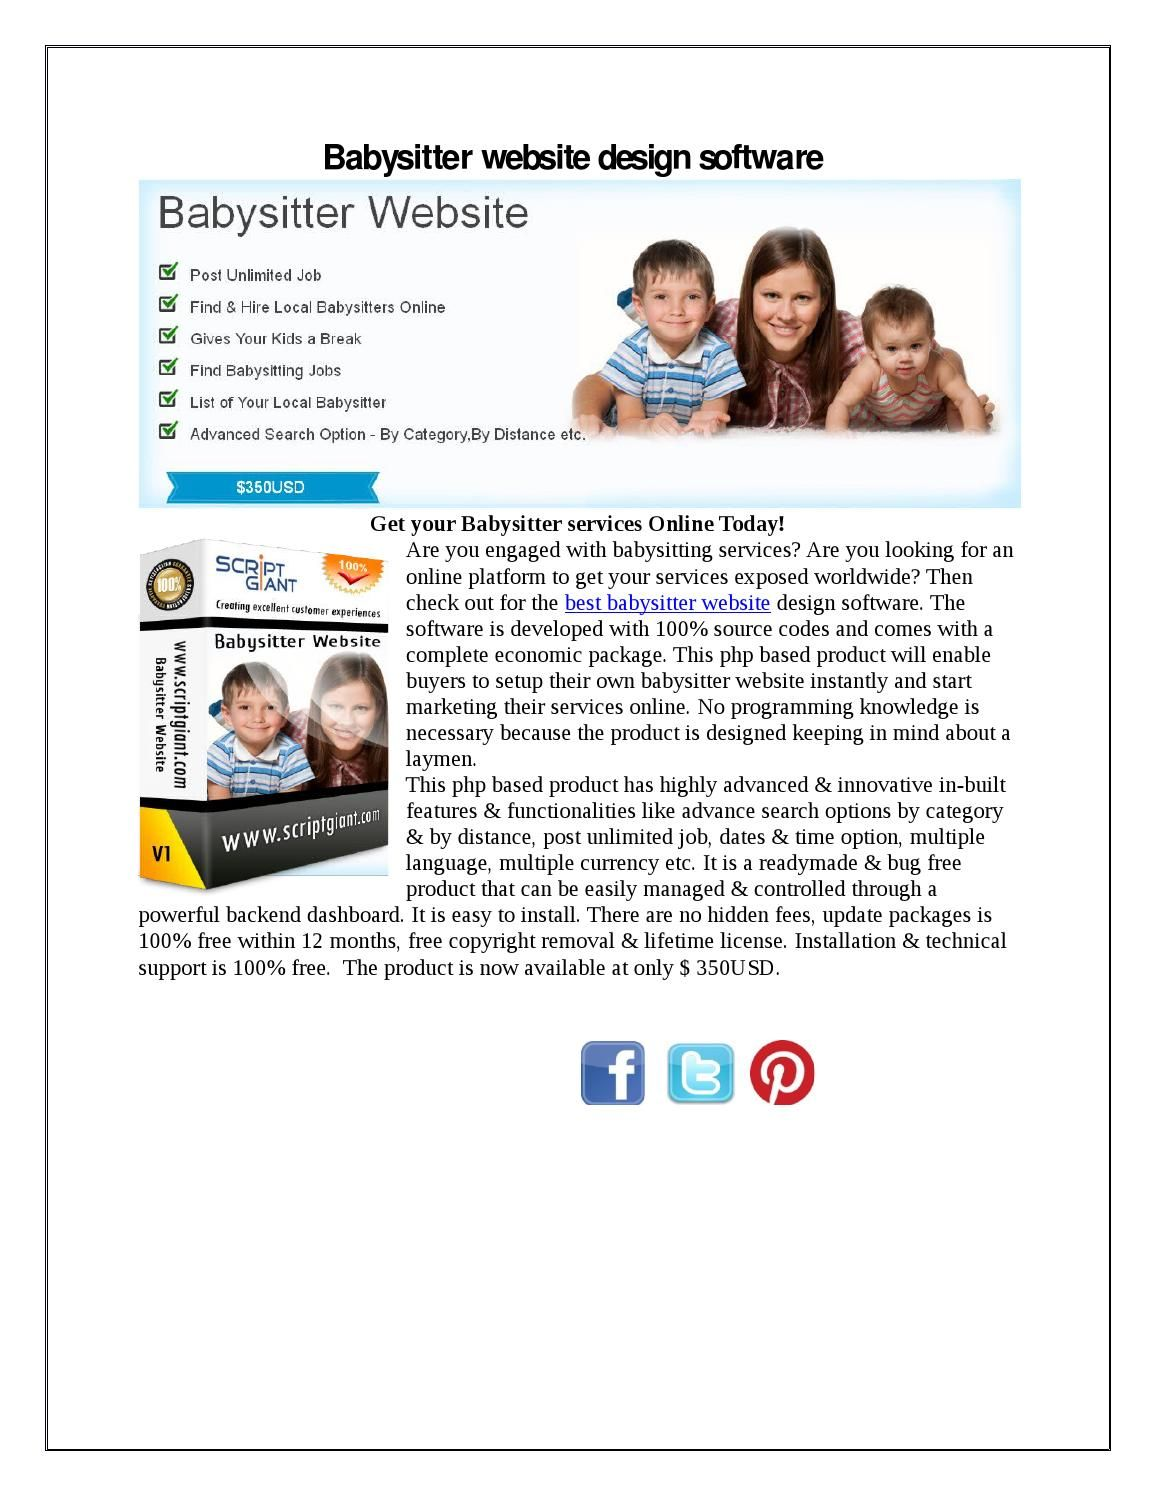 babysitter website script has been developed to create a replica of babysitter website the software